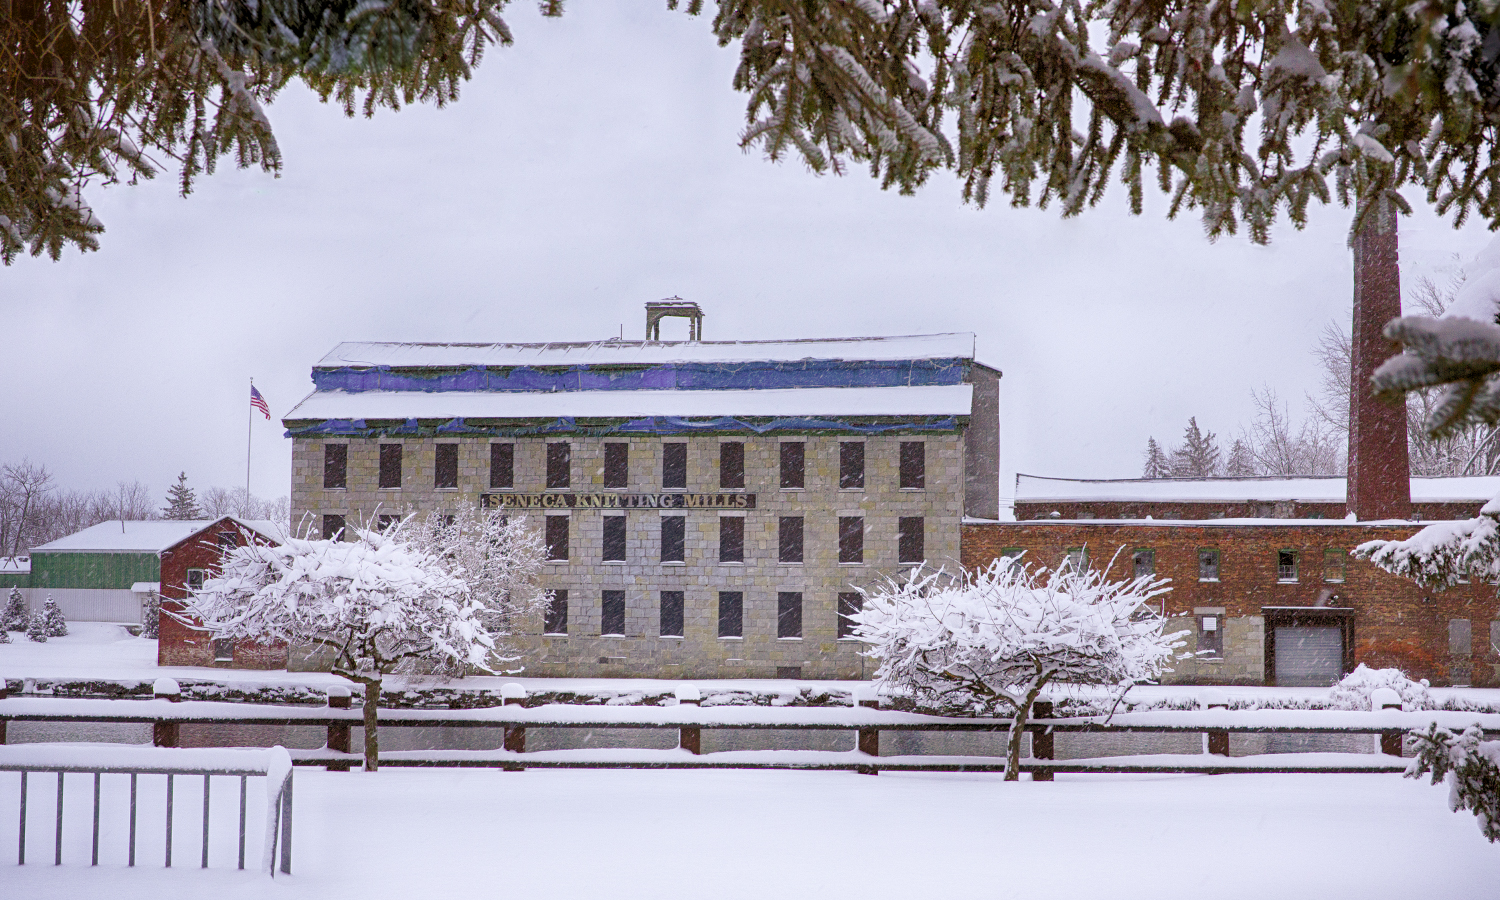 The Seneca Knitting Mill in the snow. The historic Seneca Falls building will be the new home of the National Women's Hall of Fame once renovations are completed.